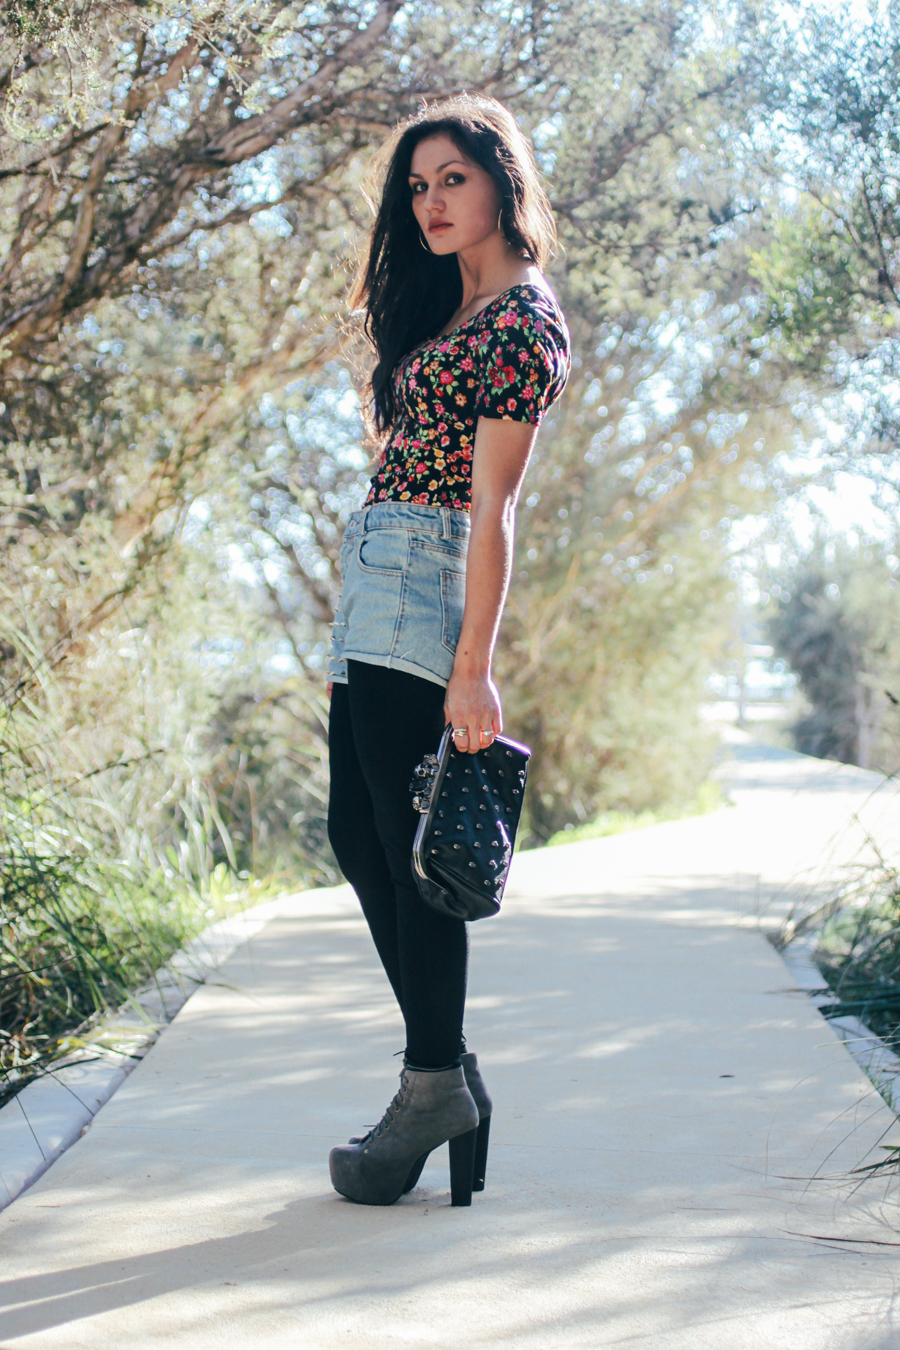 Perth fashion blog. Jeffrey Campbell Lita boots, floral top, studded denim shorts, knuckle duster clutch.